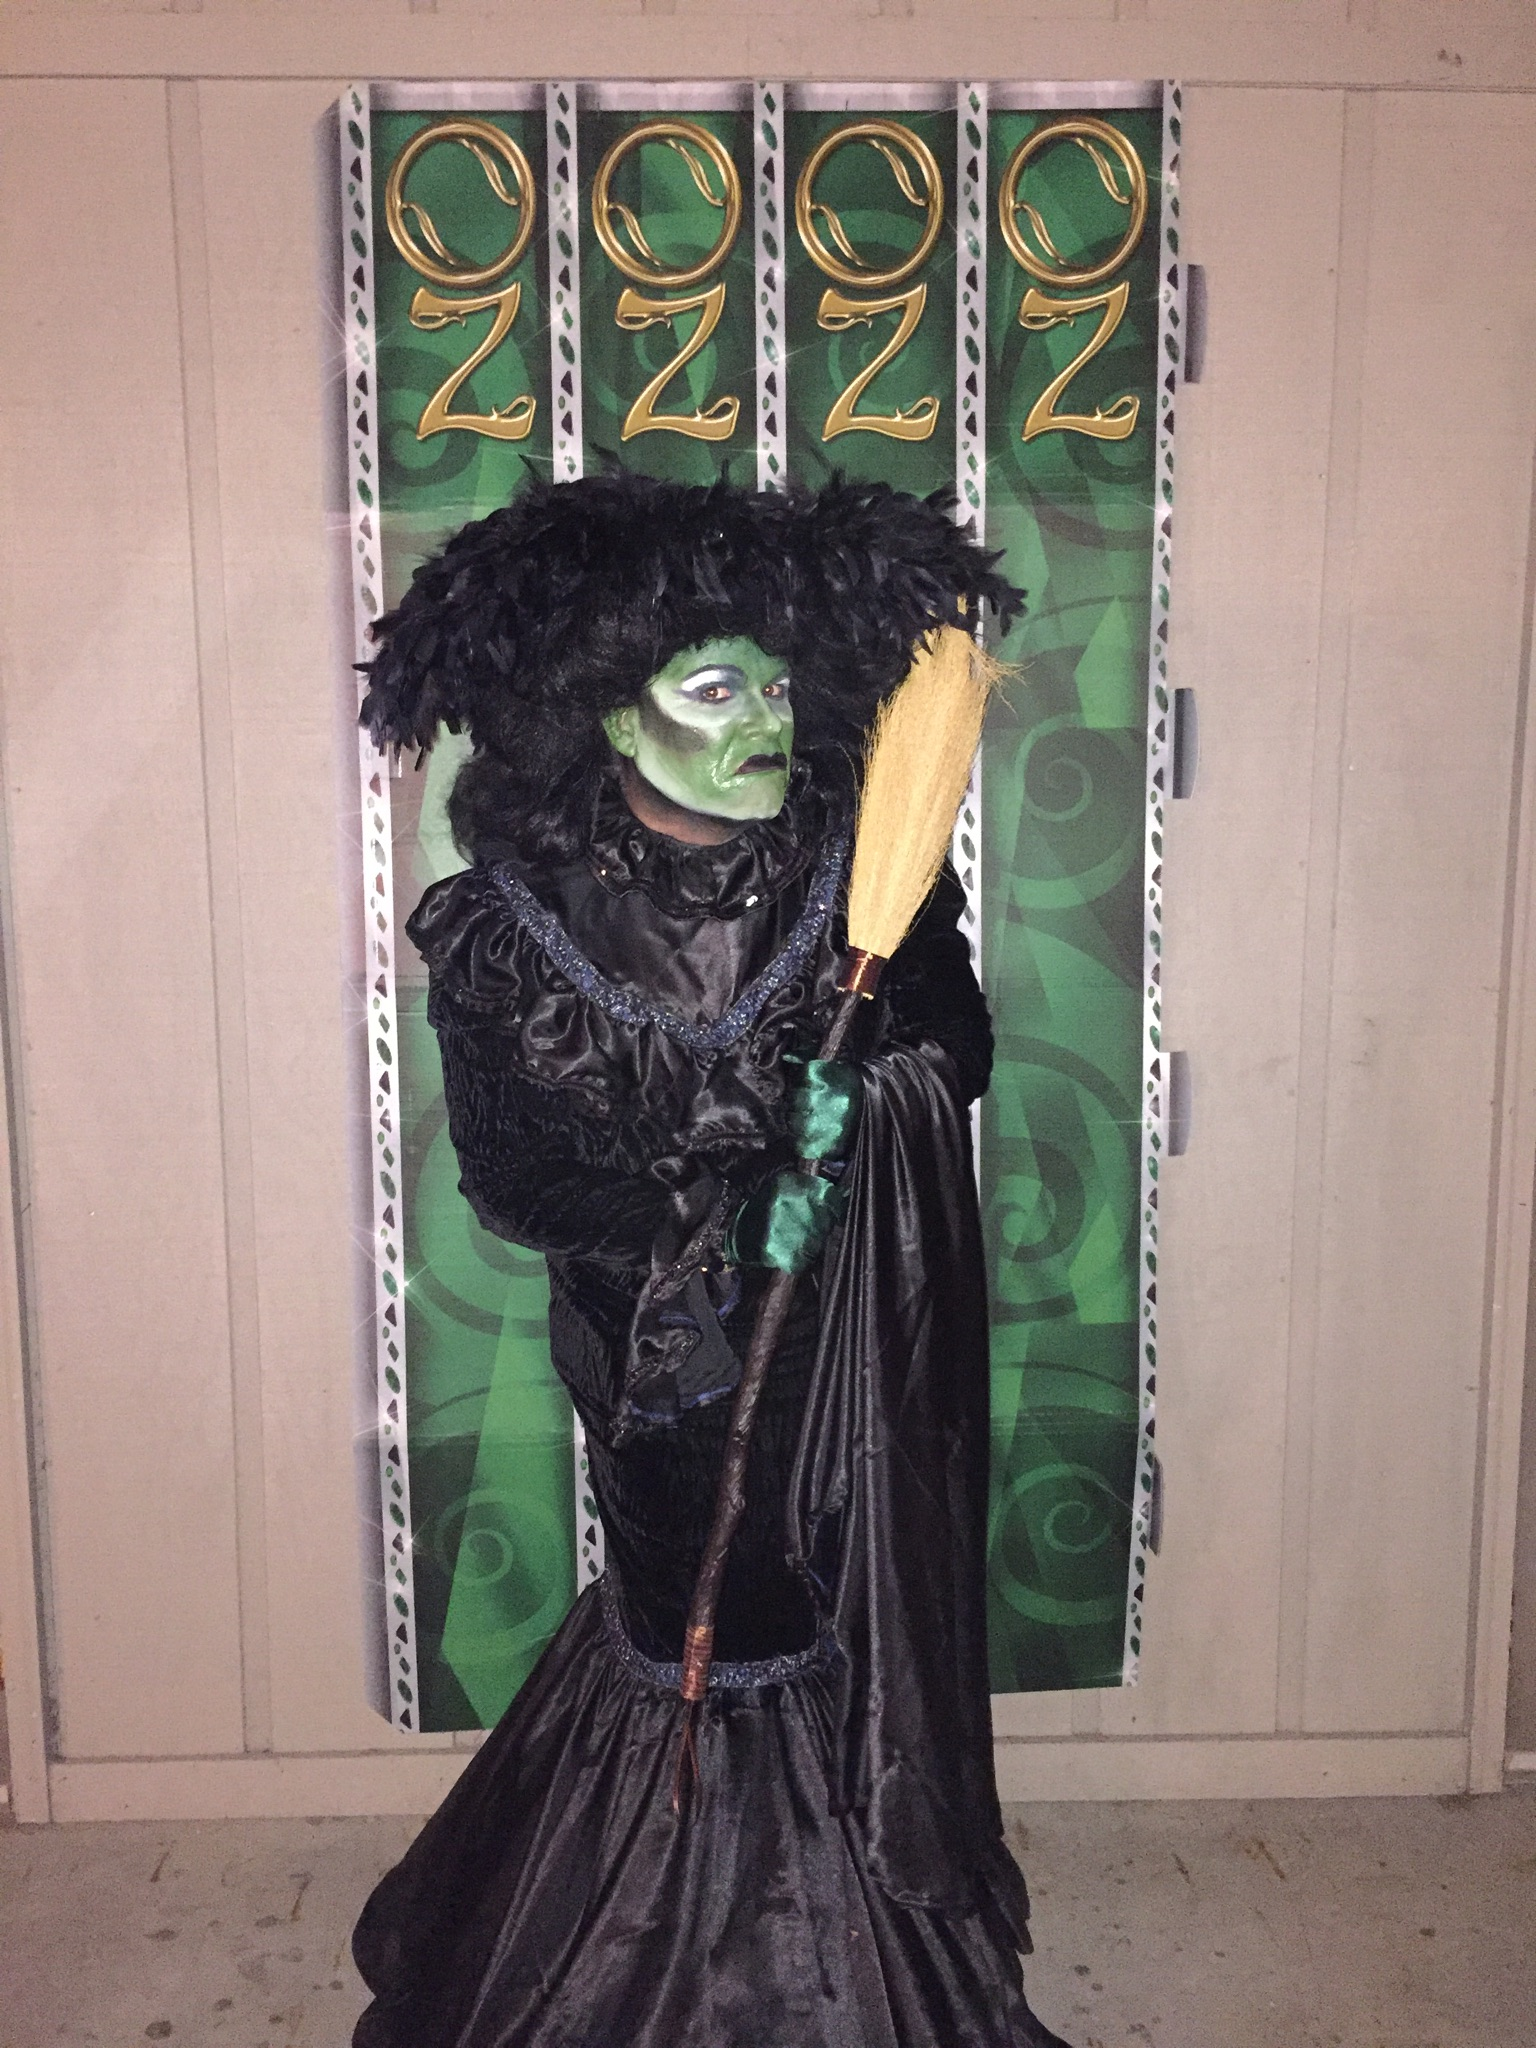 Oz Ball_Wicked Witch.jpg